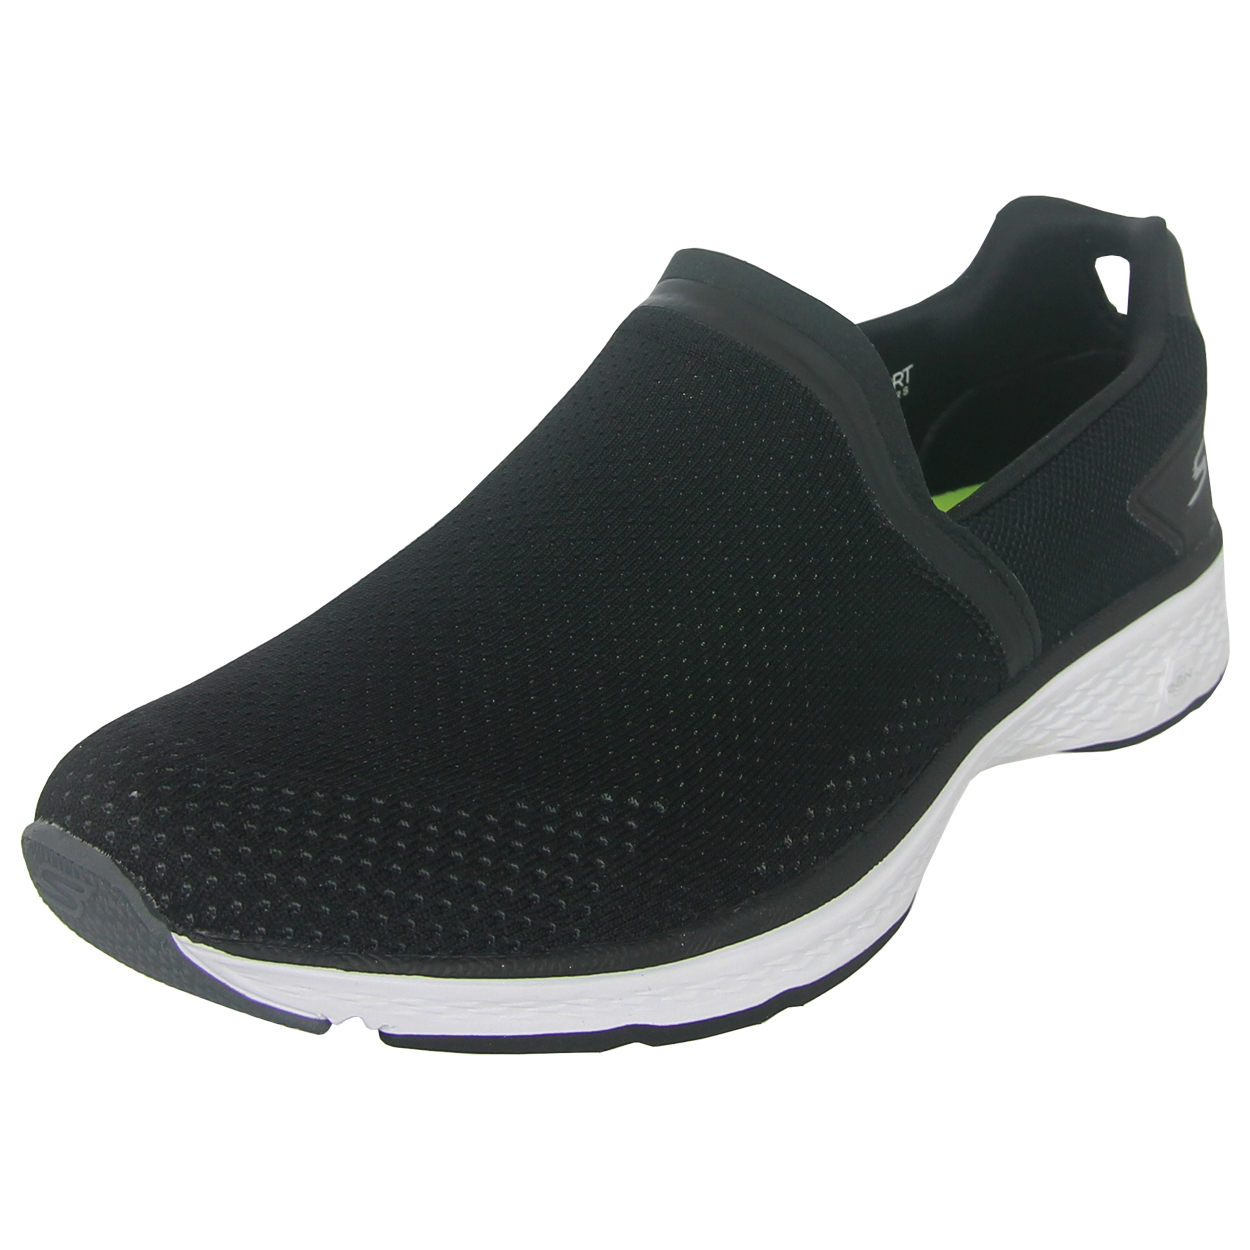 51038f77d87d skechers go walk 2 mens mesh slip-on shoes sale   OFF65% Discounted